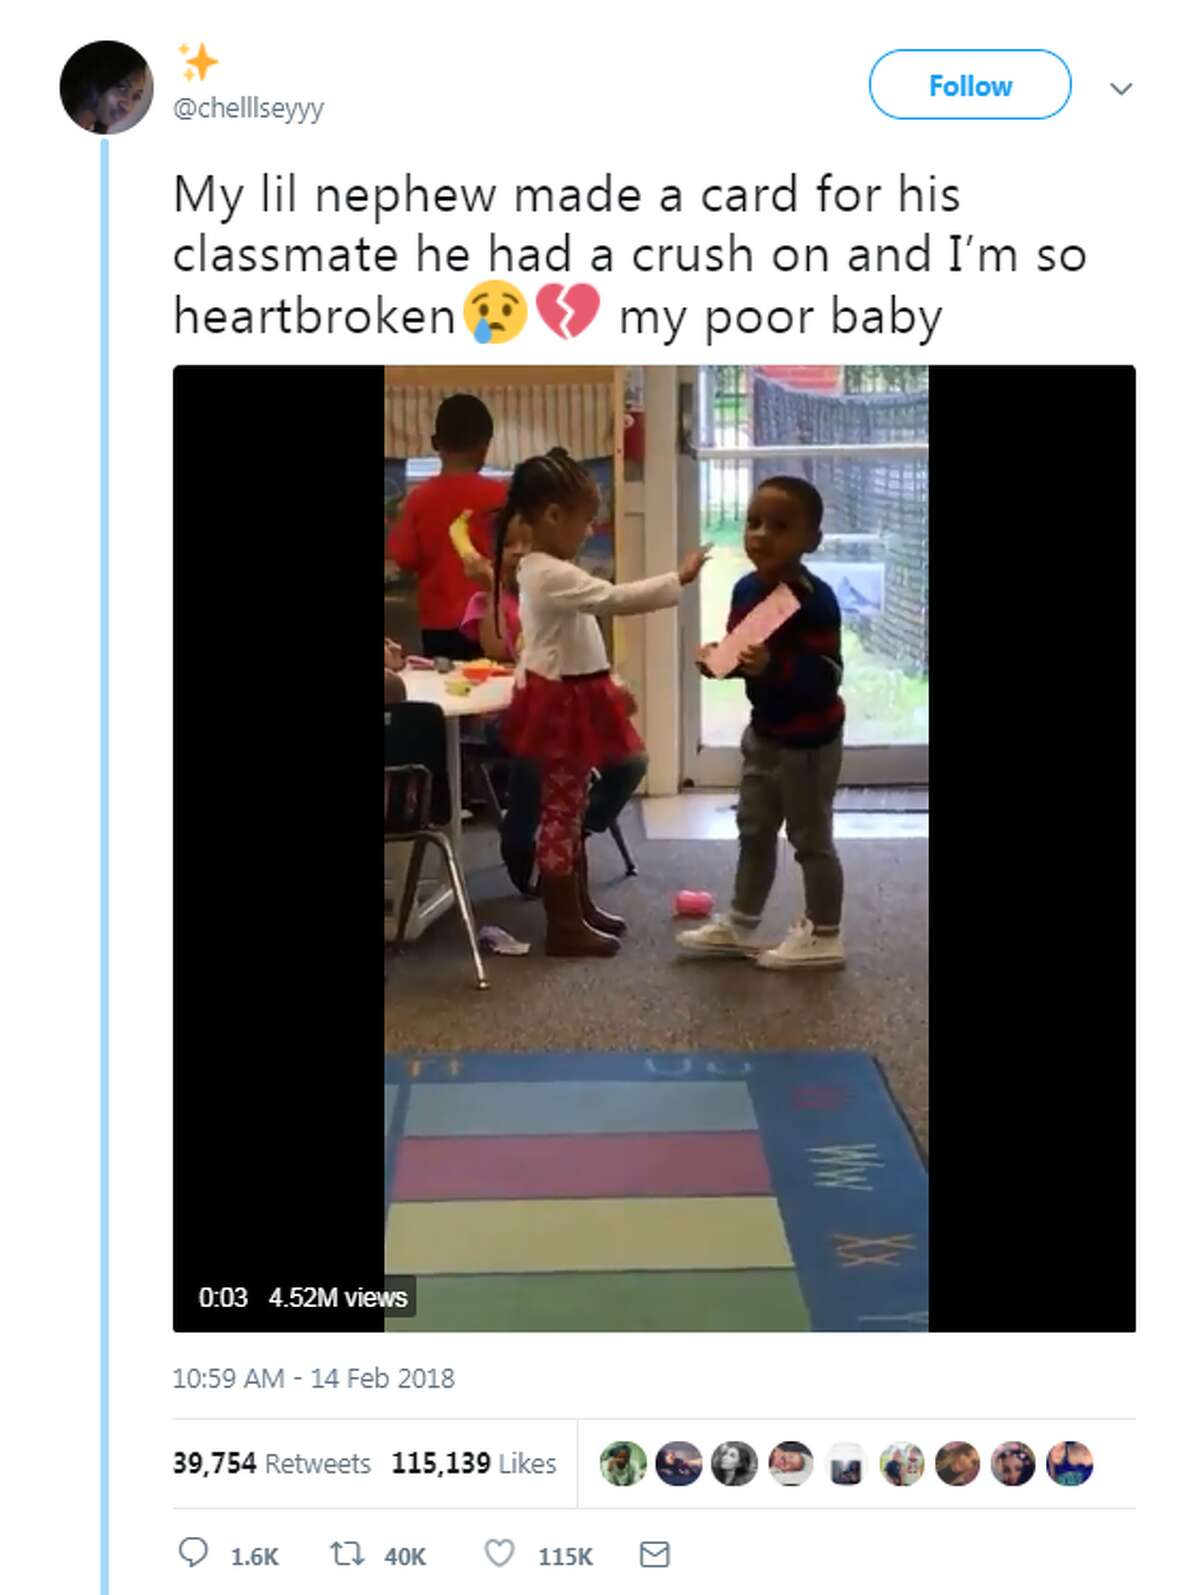 Twitter user @chelllseyyy, from Missouri City, tweeted a video of her nephew offering his crush a handmade card and getting rejected. In a follow-up tweet, the little boy said